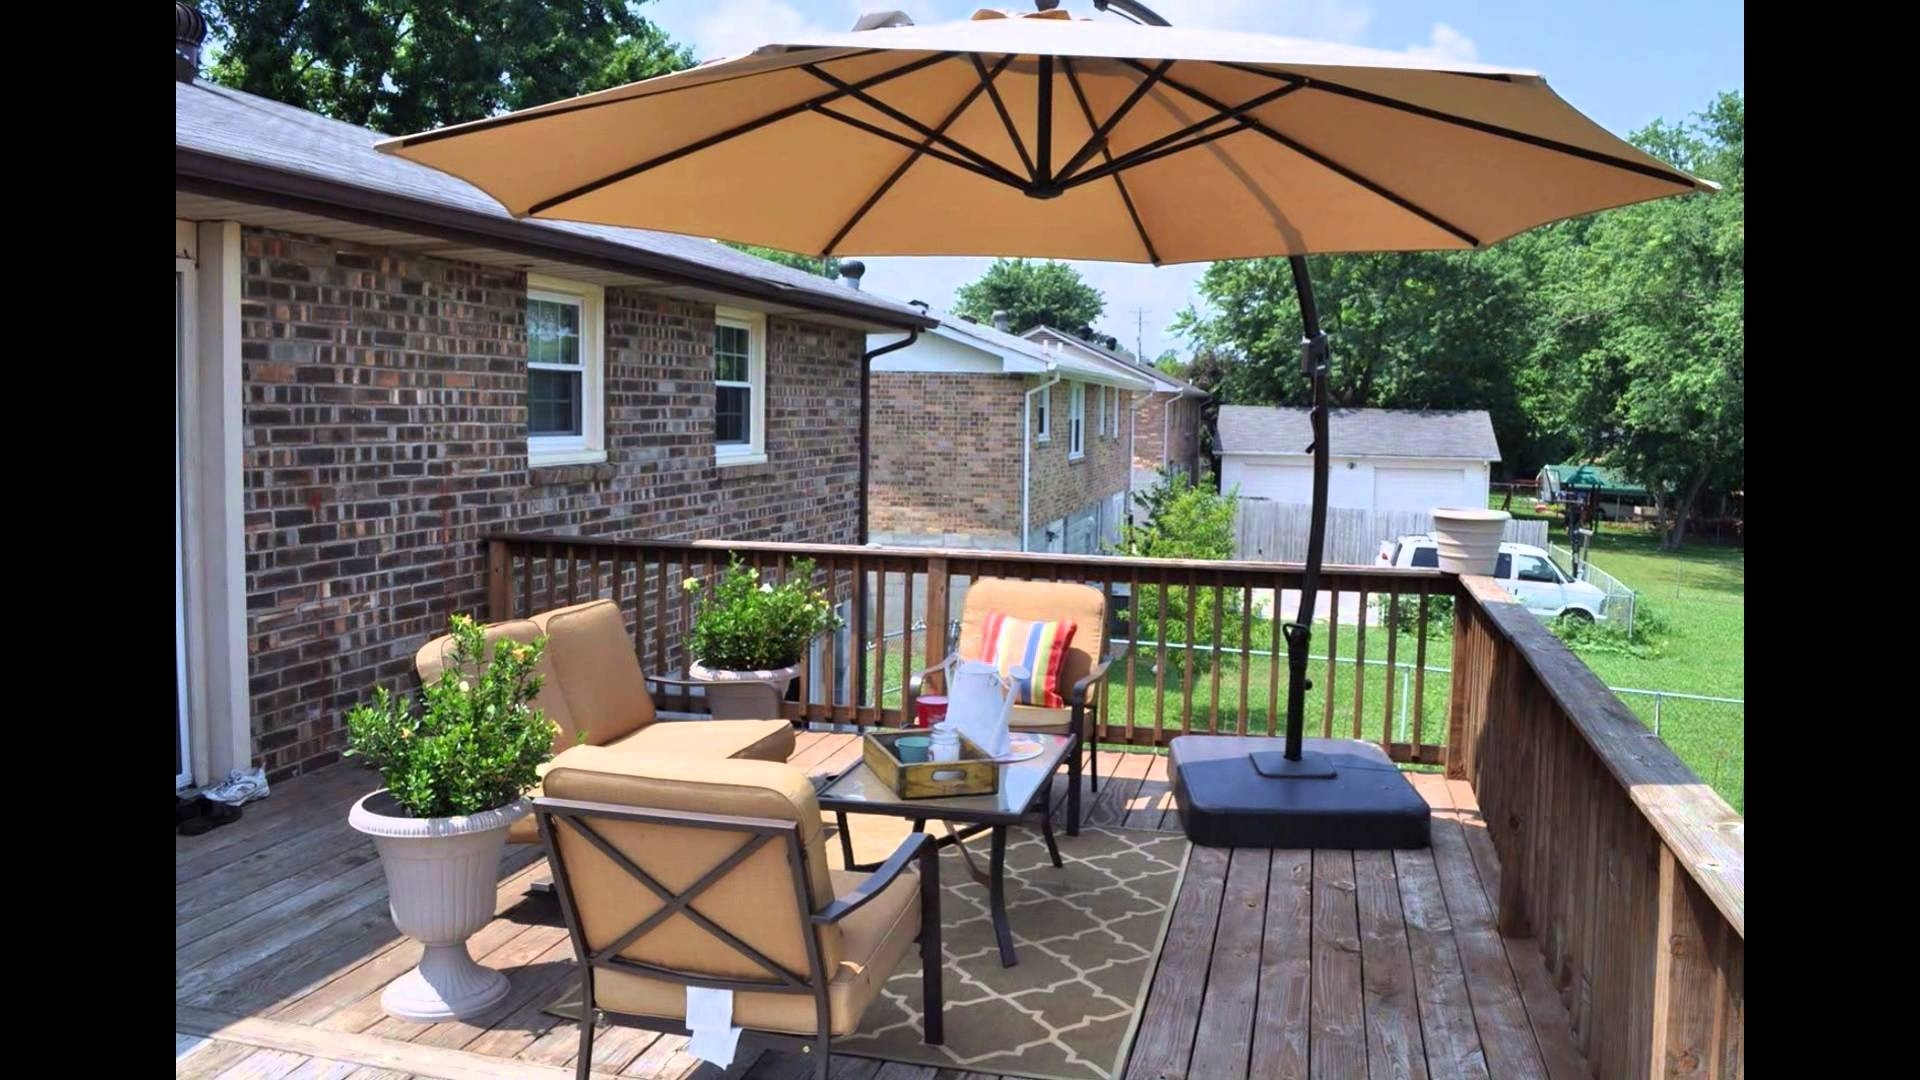 2019 Lowes Patio Furniture – Youtube Within Lowes Patio Umbrellas (Gallery 20 of 20)